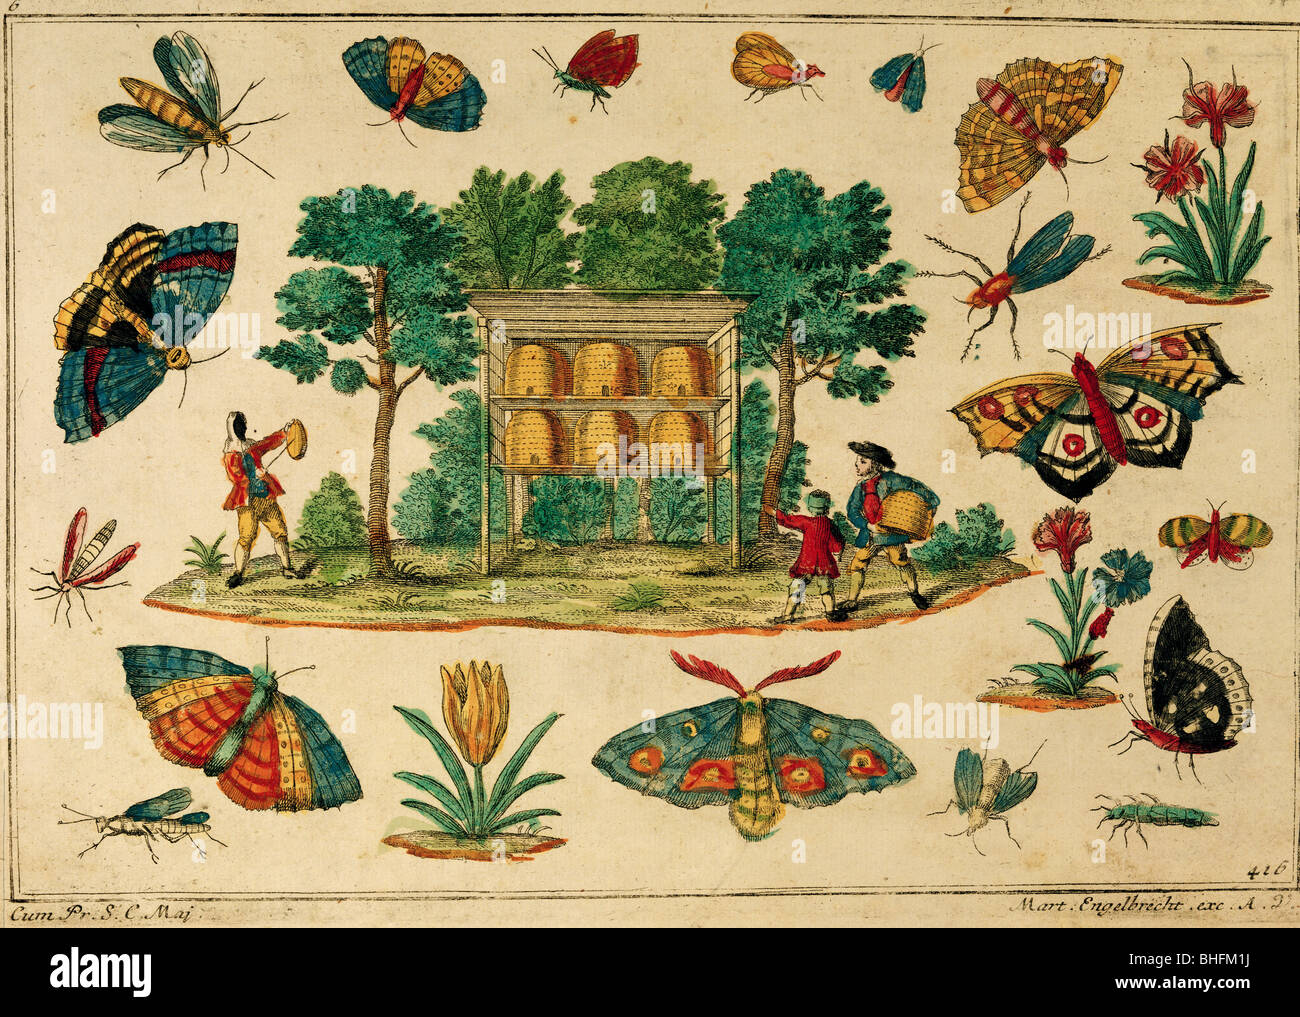 literature, children's book, illustration of beehive with insects, coloured engraving by Martin Engelbrecht, - Stock Image